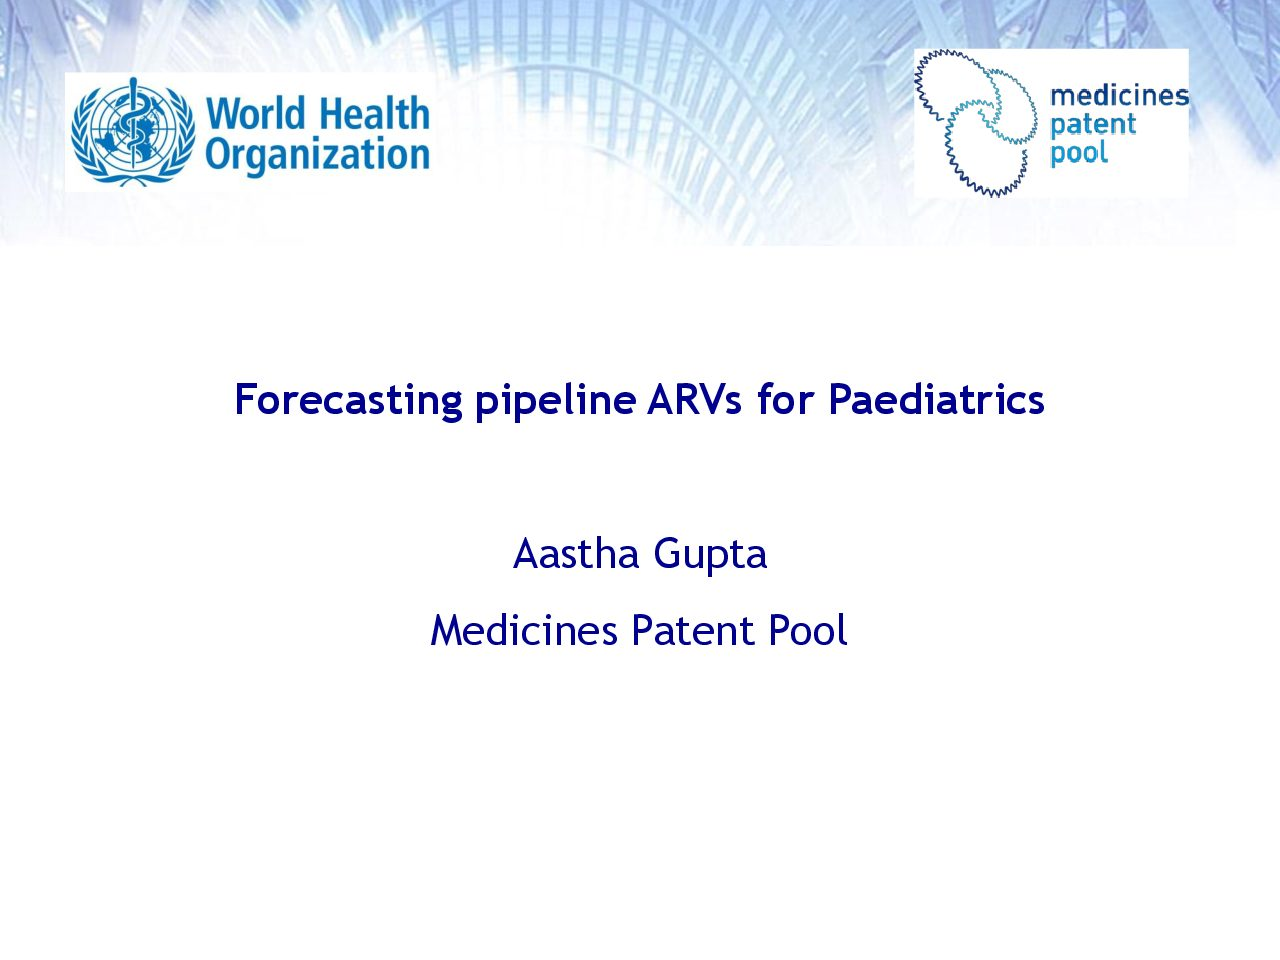 MPP Forecasting pipeline ARVs for Paediatrics